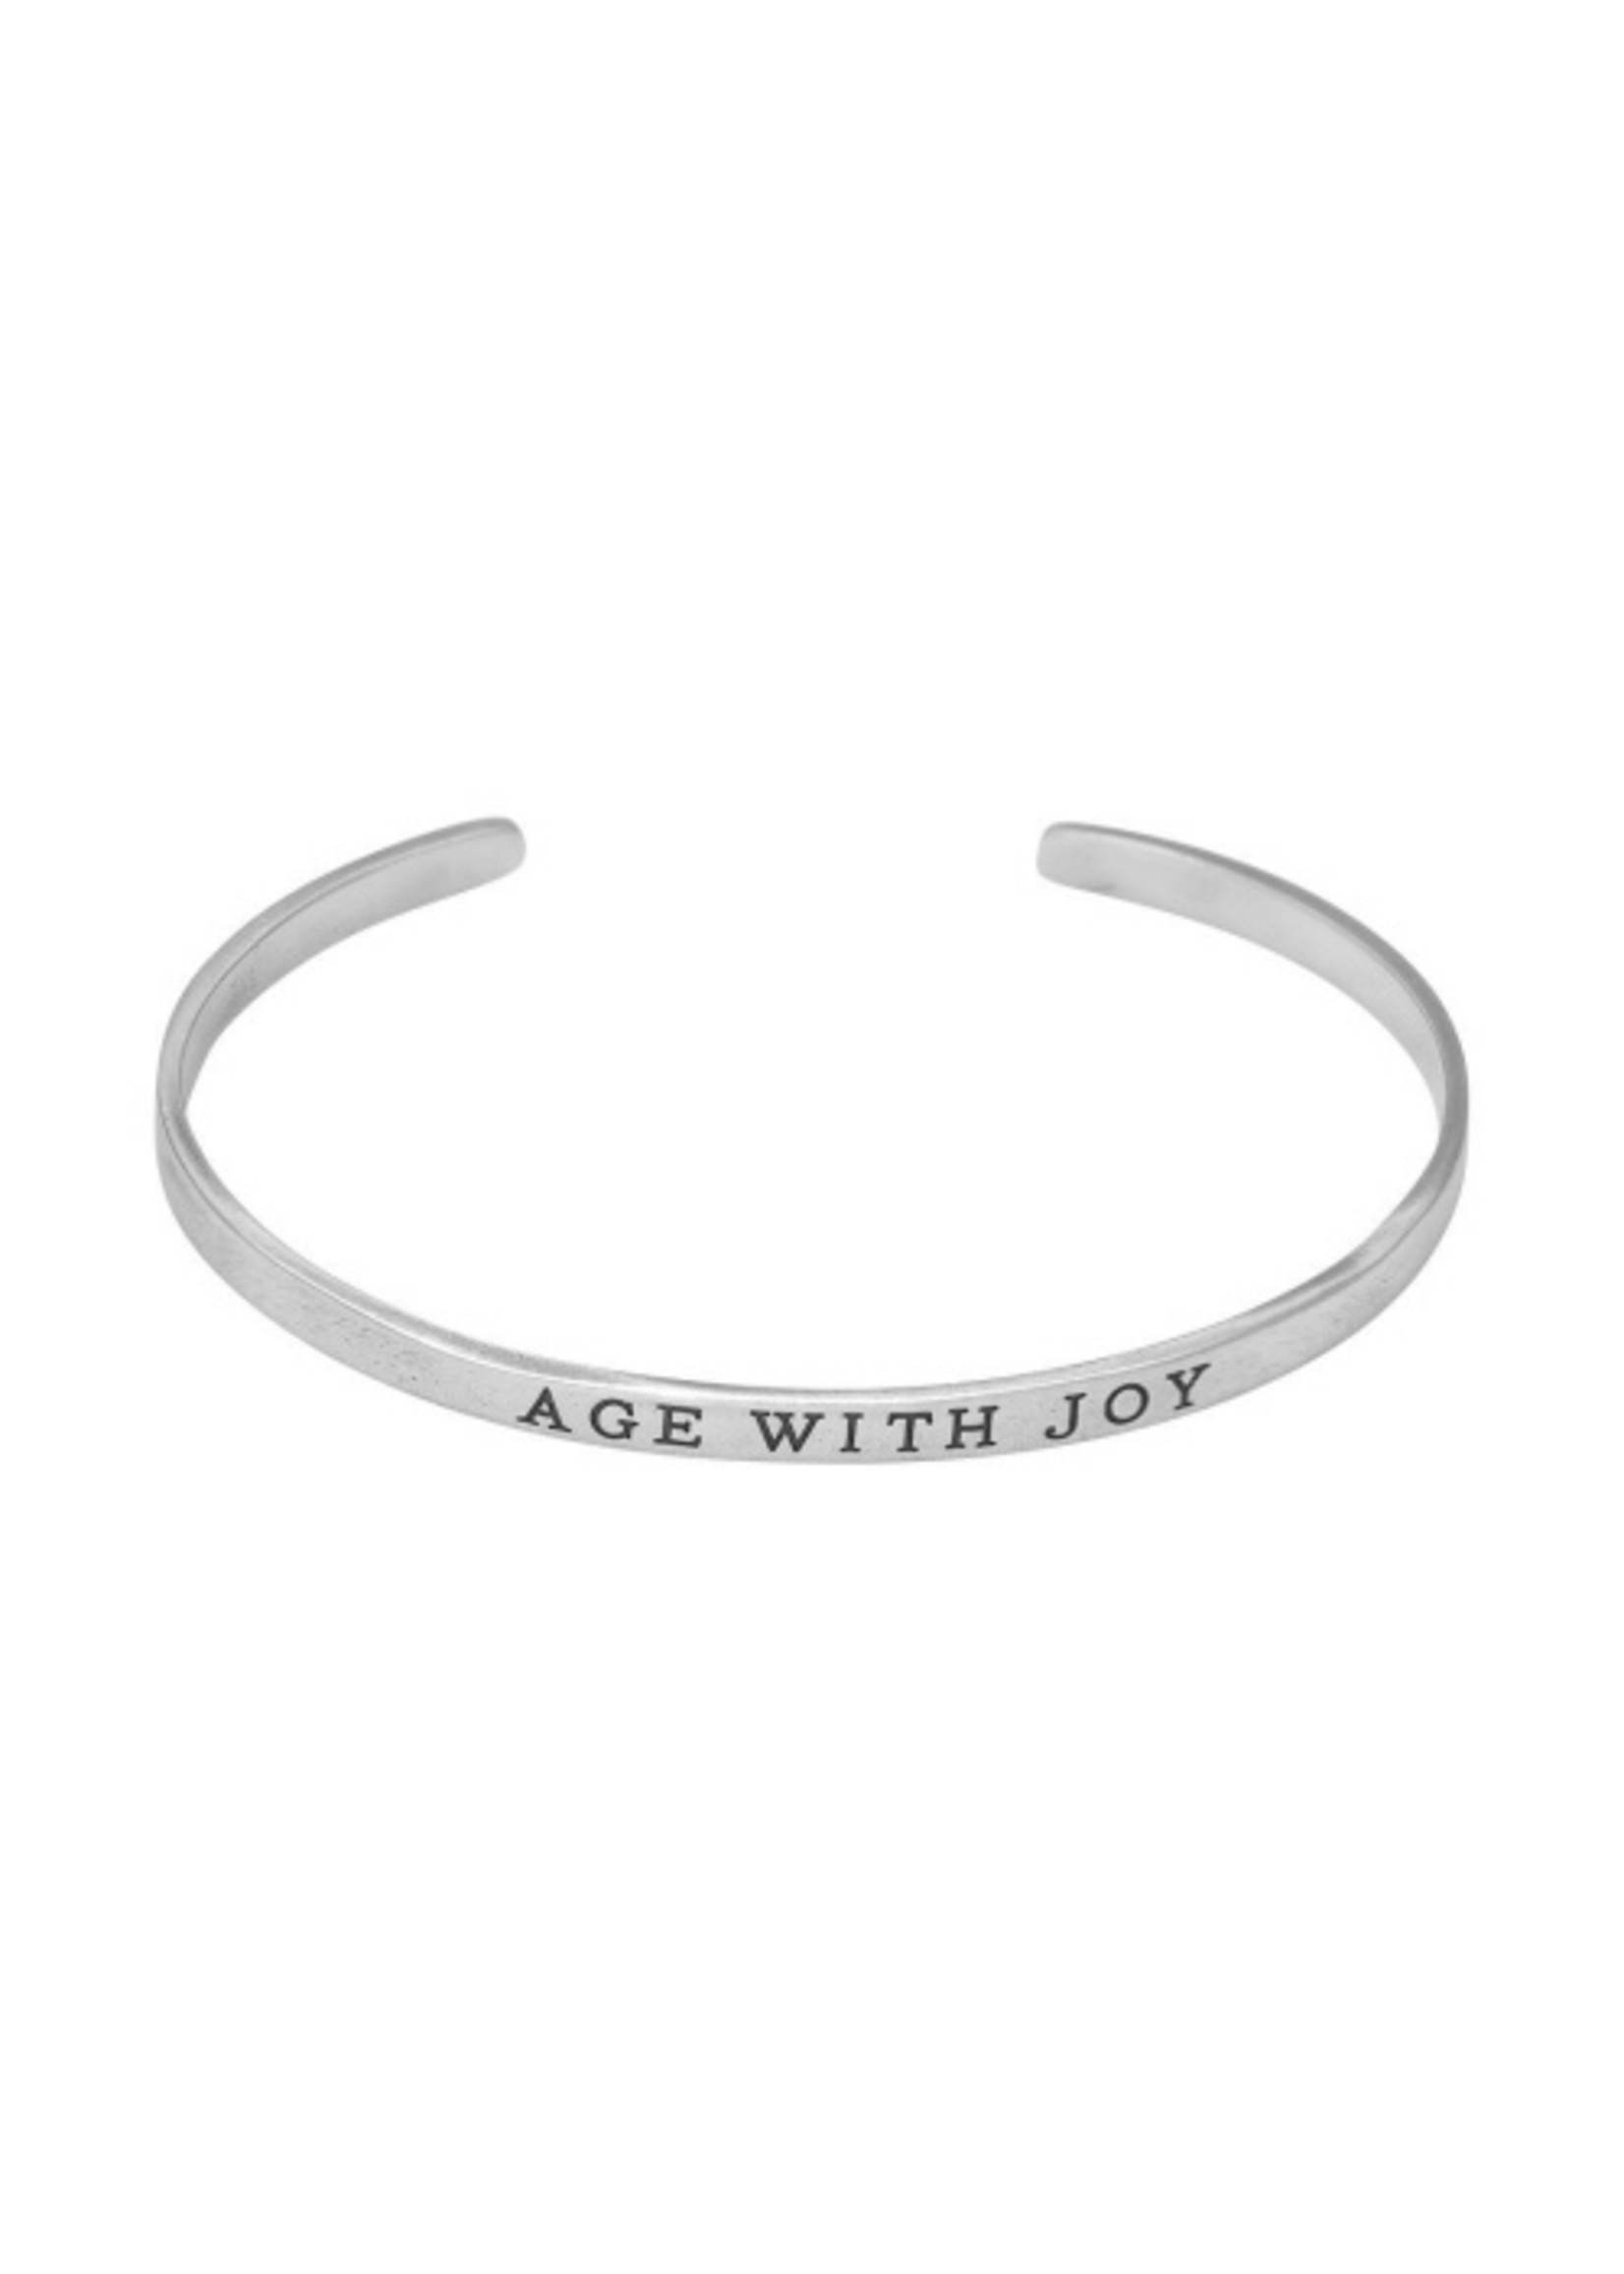 Waxing Poetic Age With Joy Cuff - Sterling Silver